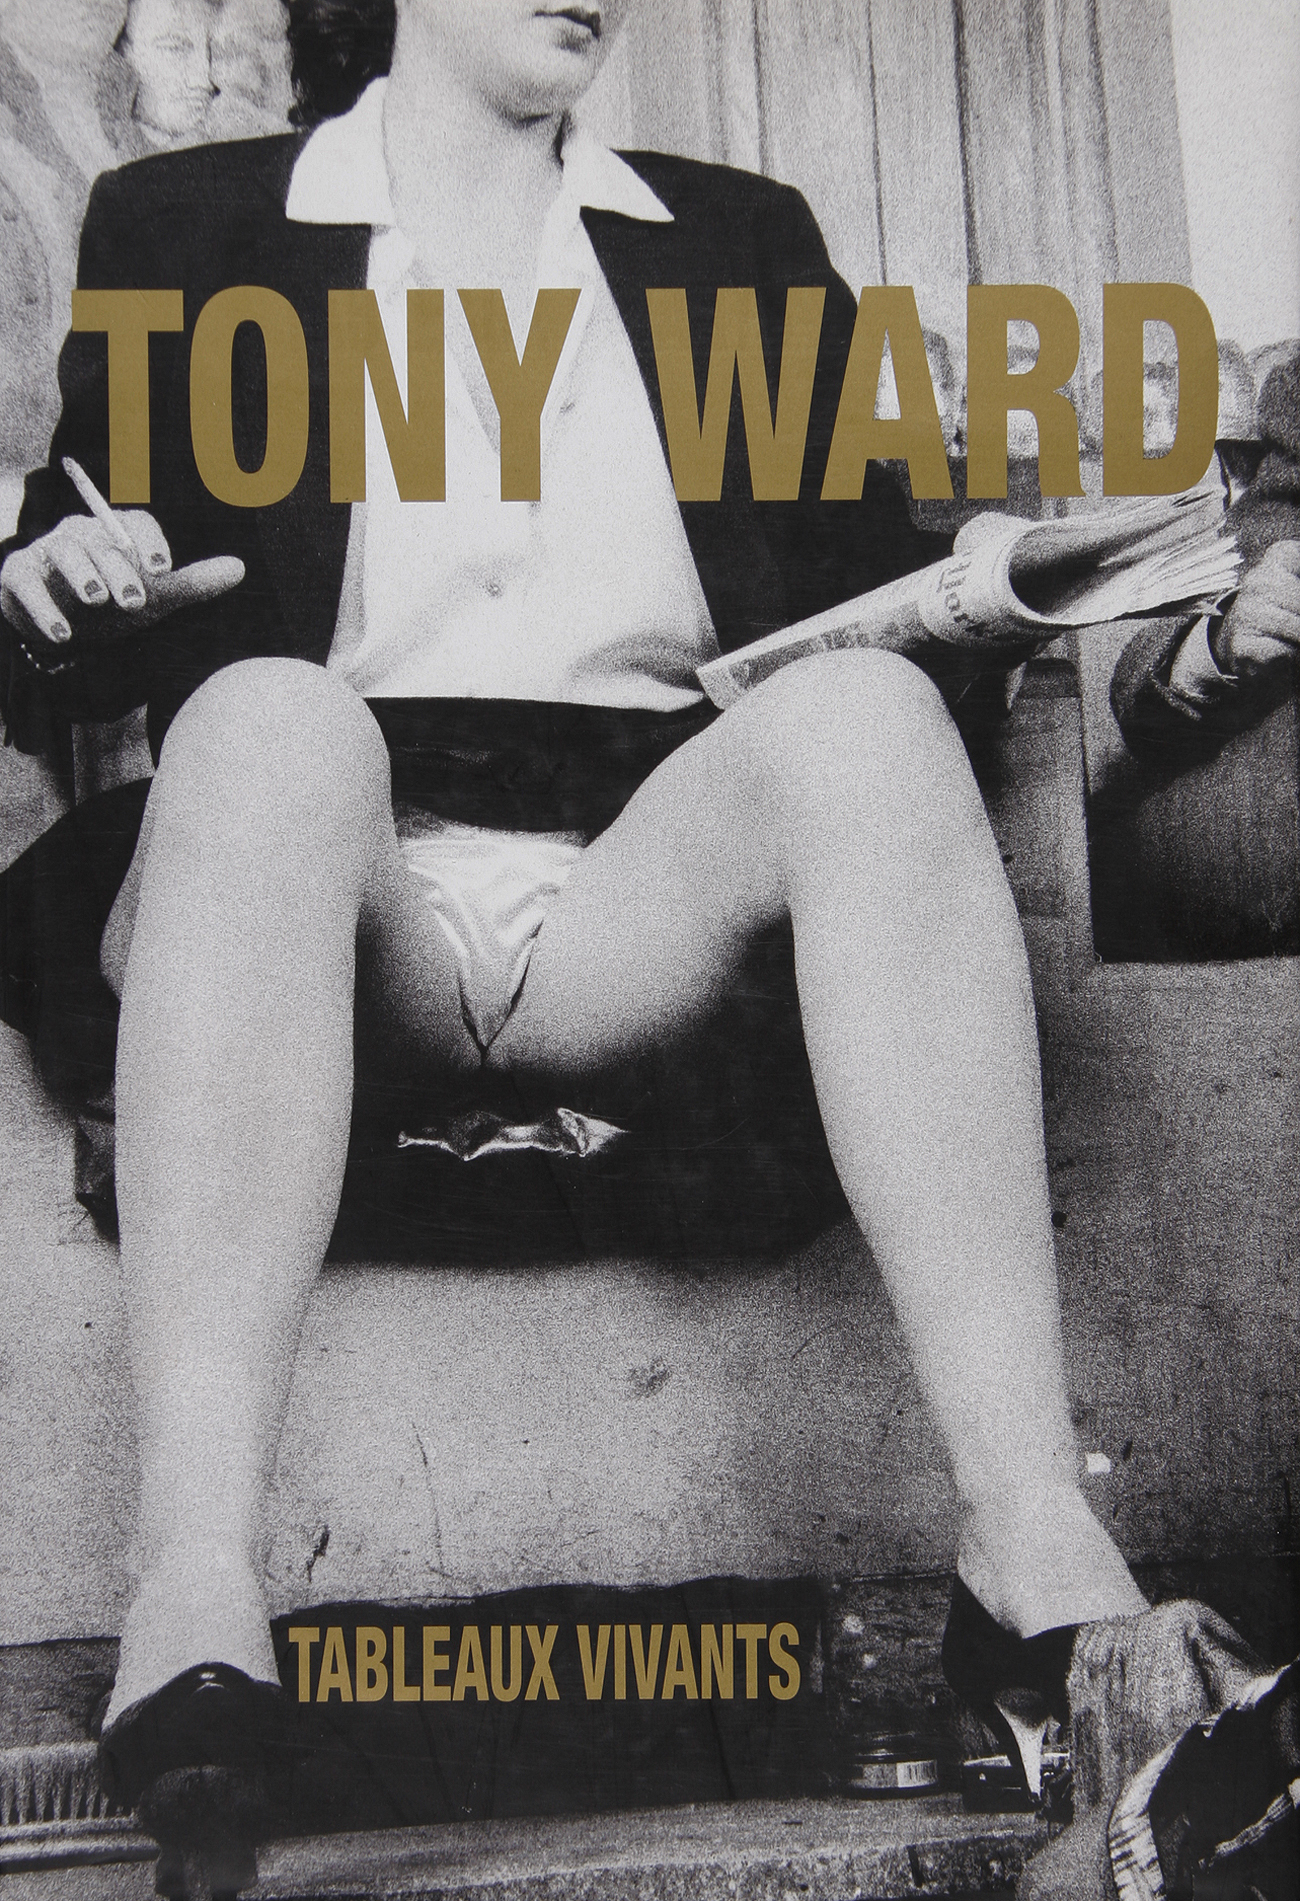 Tony_Ward_tableaux_vivants_monograph_erotica_scenes